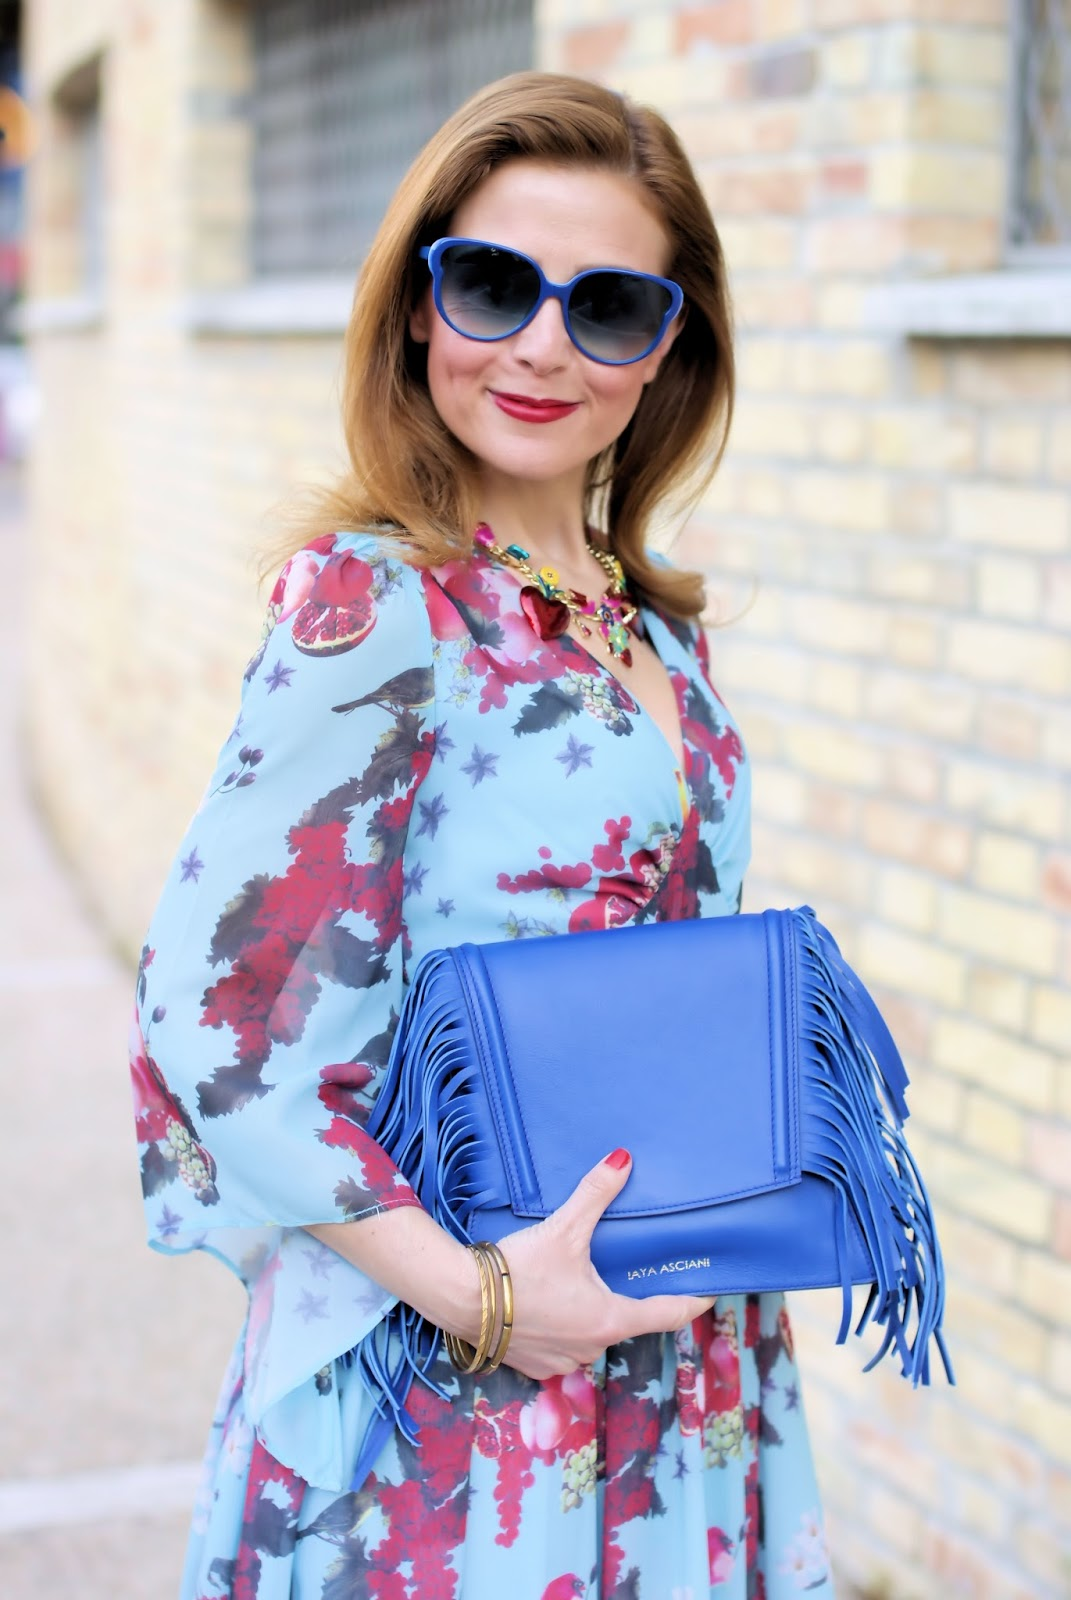 Iaya Asciani clutch on Fashion and Cookies fashion blog, fashion blogger style